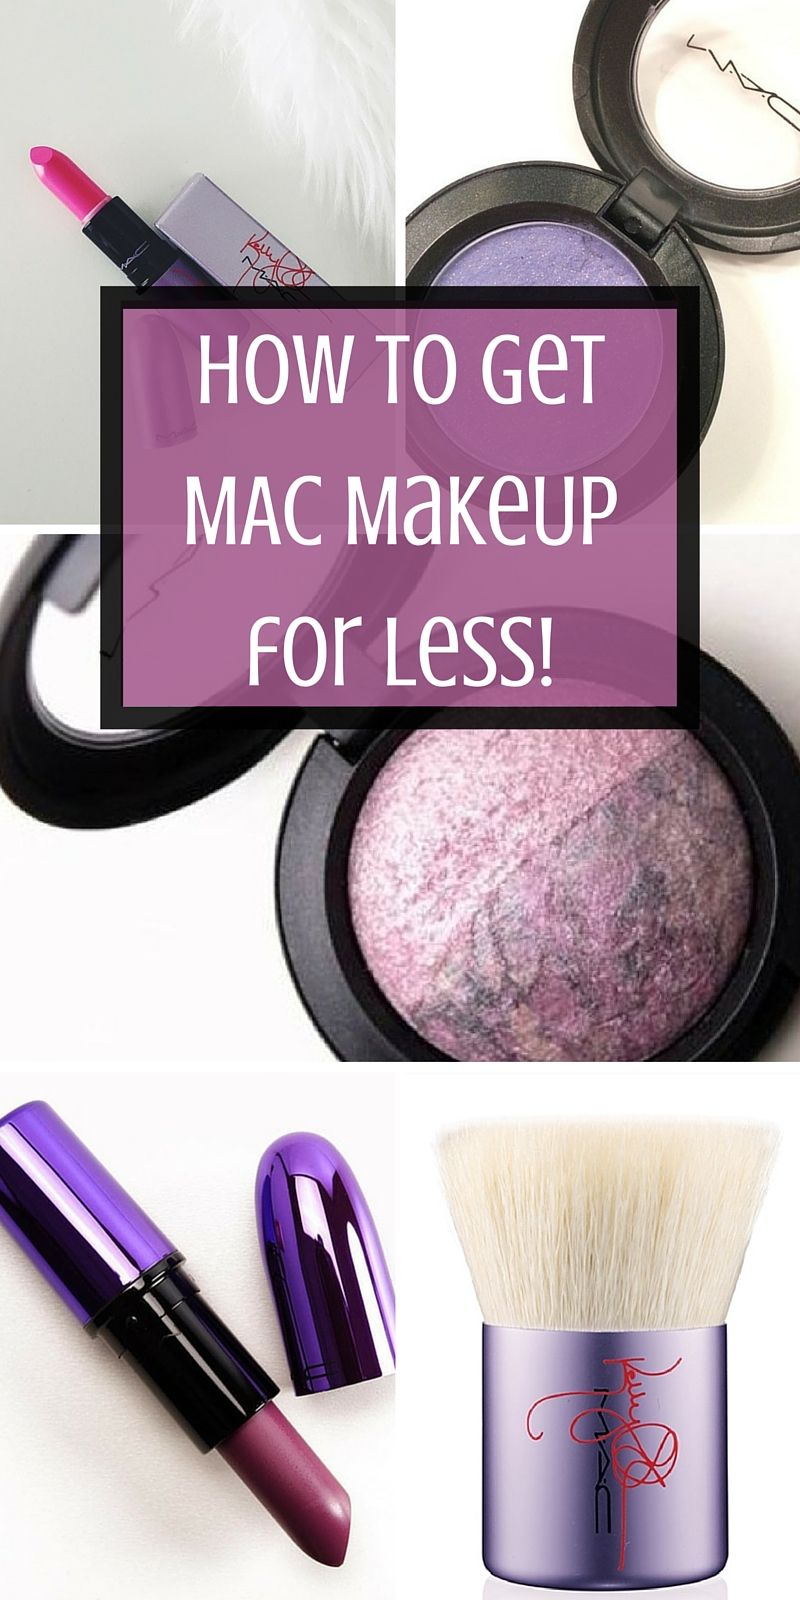 Get FREE Mac makeup 0 from Cheap MAC Cosmetics Wholesale